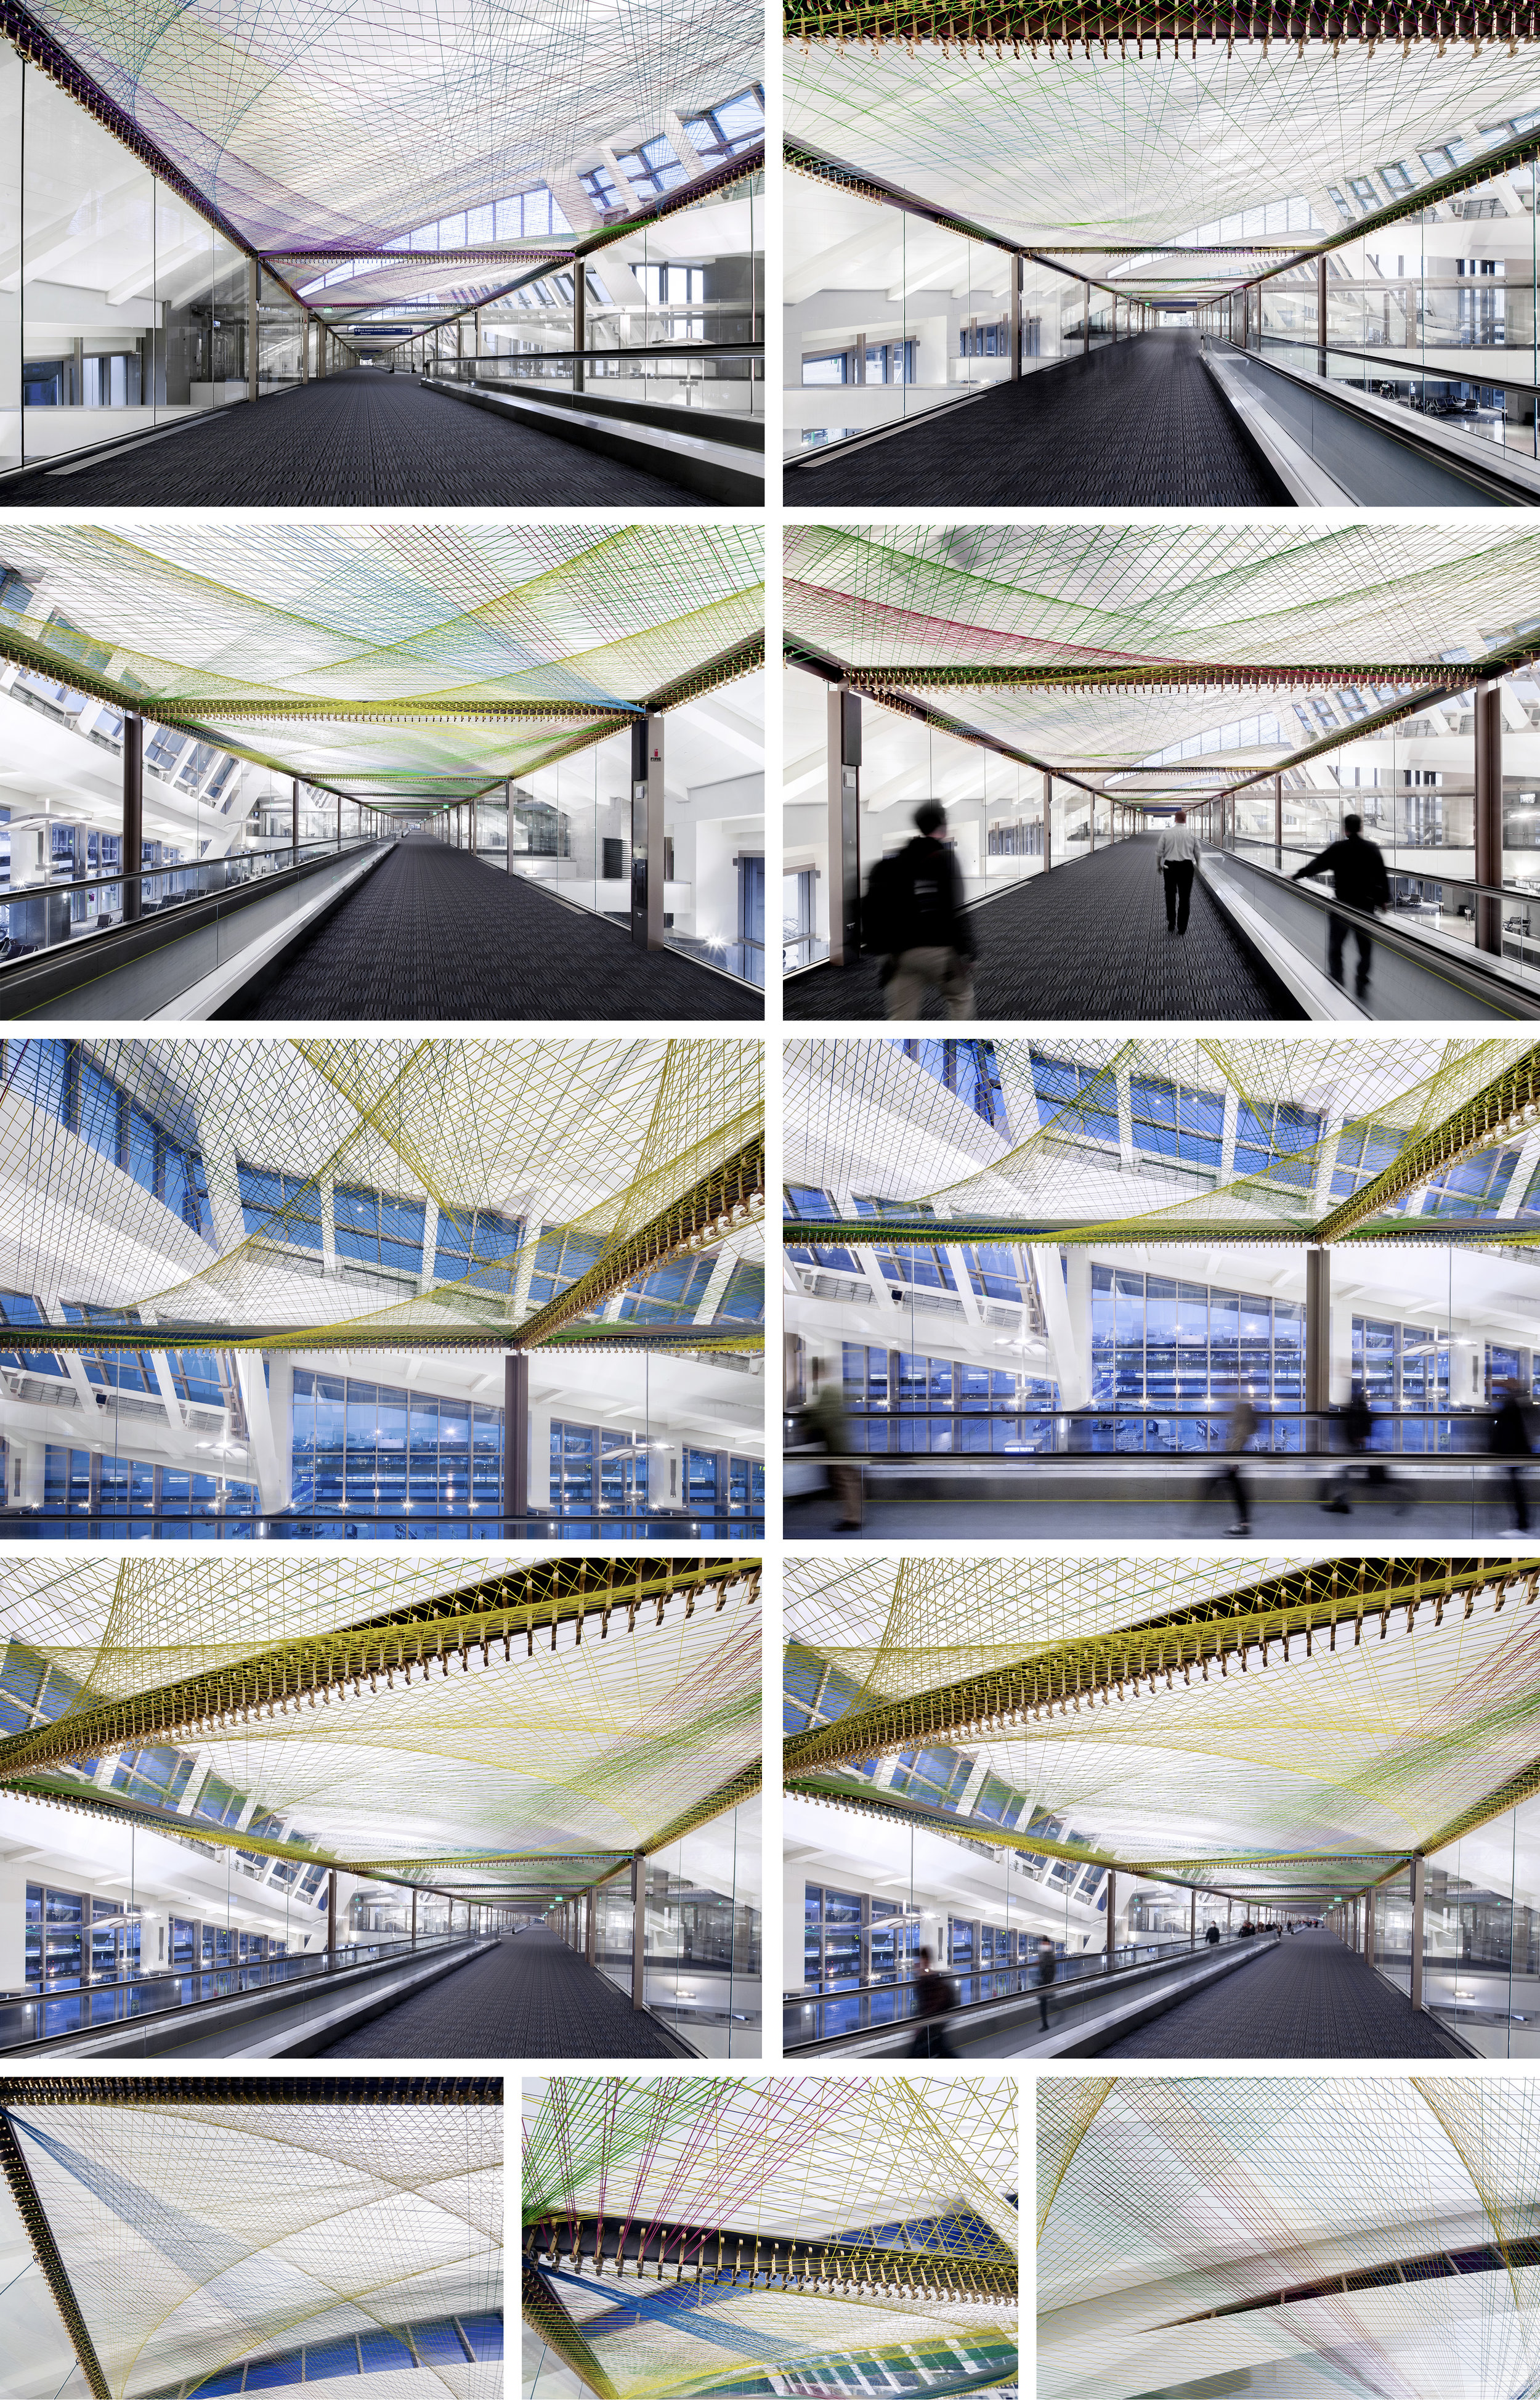 Pae White ΣLAX 2015 Gold anodized aluminum brackets (7,484) and Silverflex decorative cordage (23.86 miles)  Los Angeles International Airport